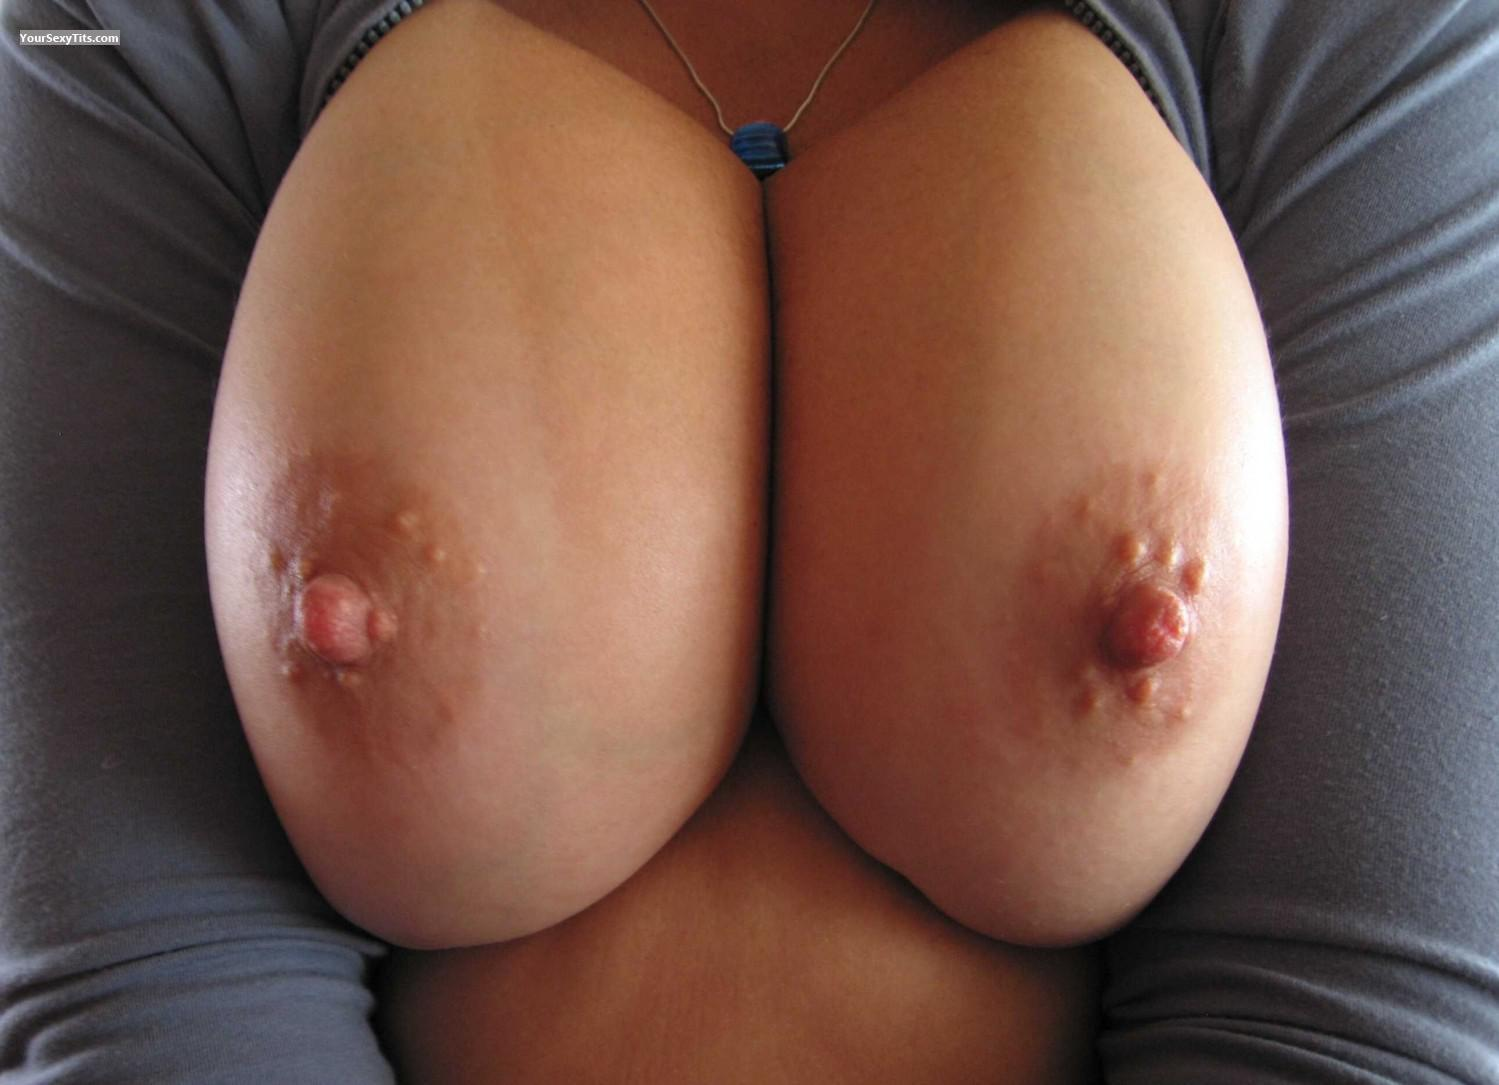 Big Tits Of My Wife Faans Flasher